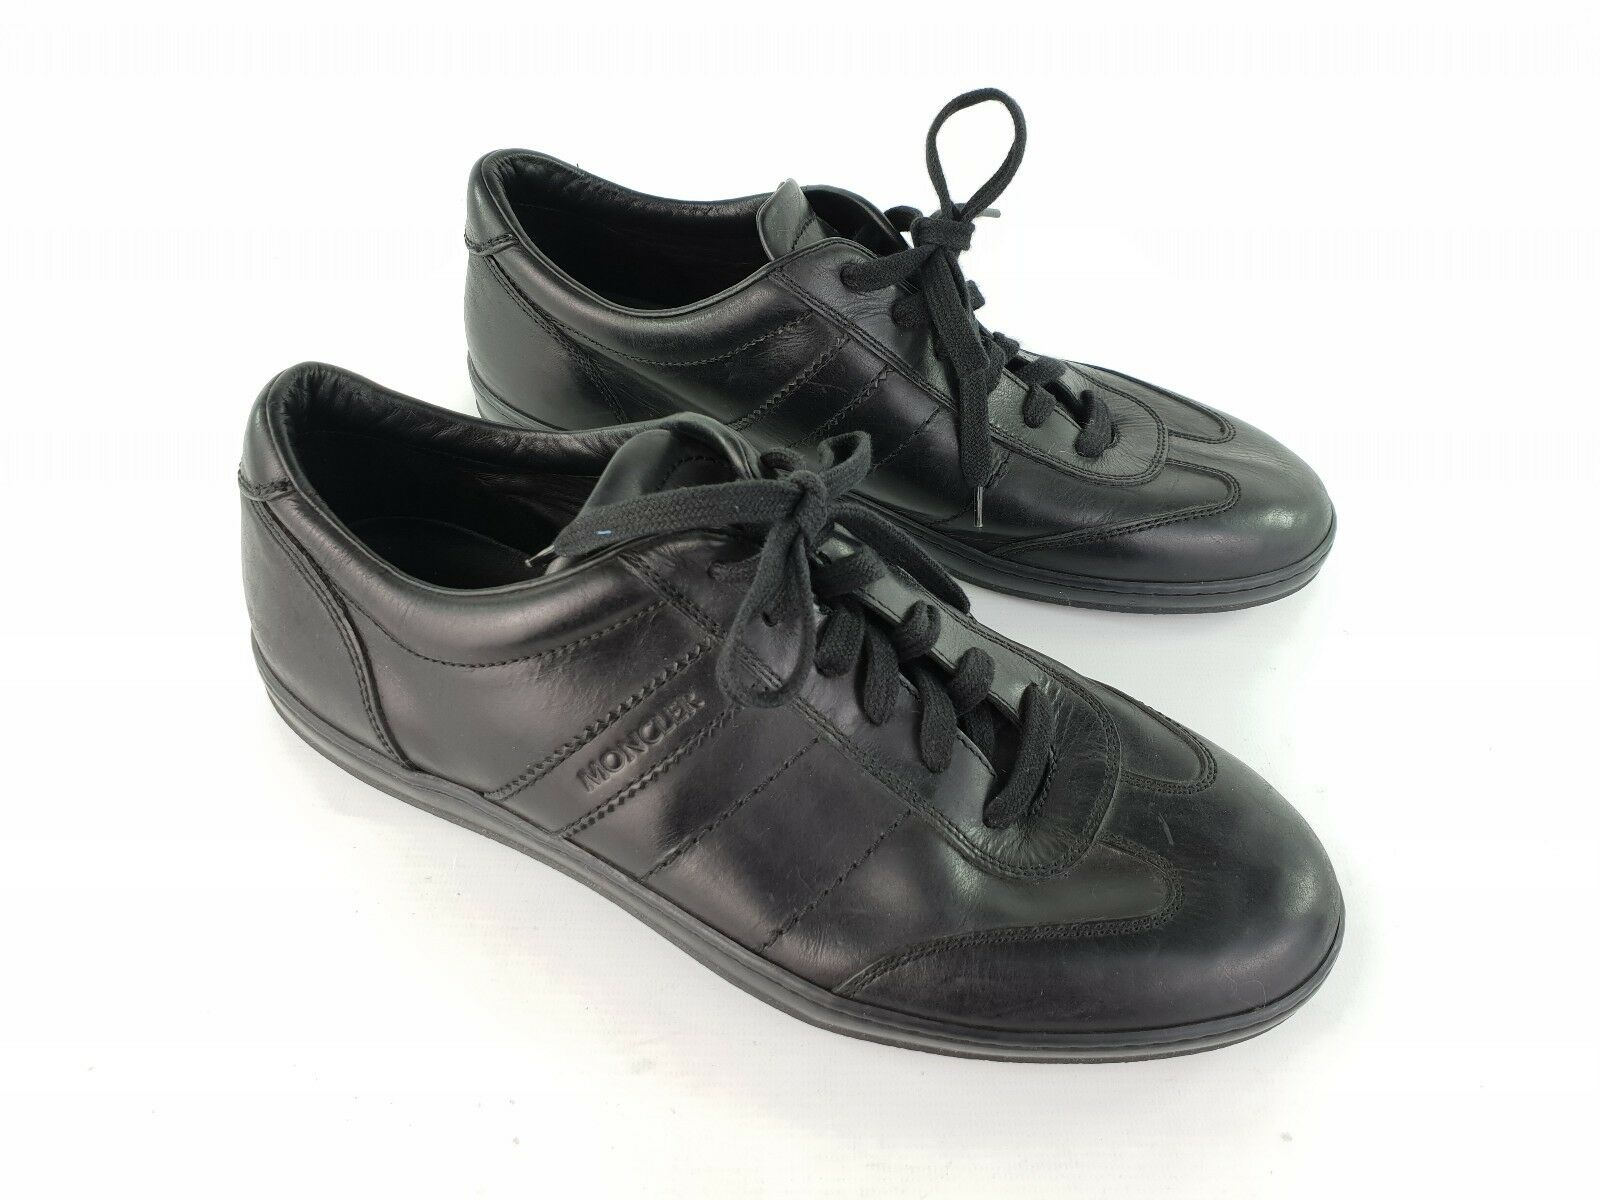 Mens Authentic Moncler Black Leather shoes Trainers Size 46